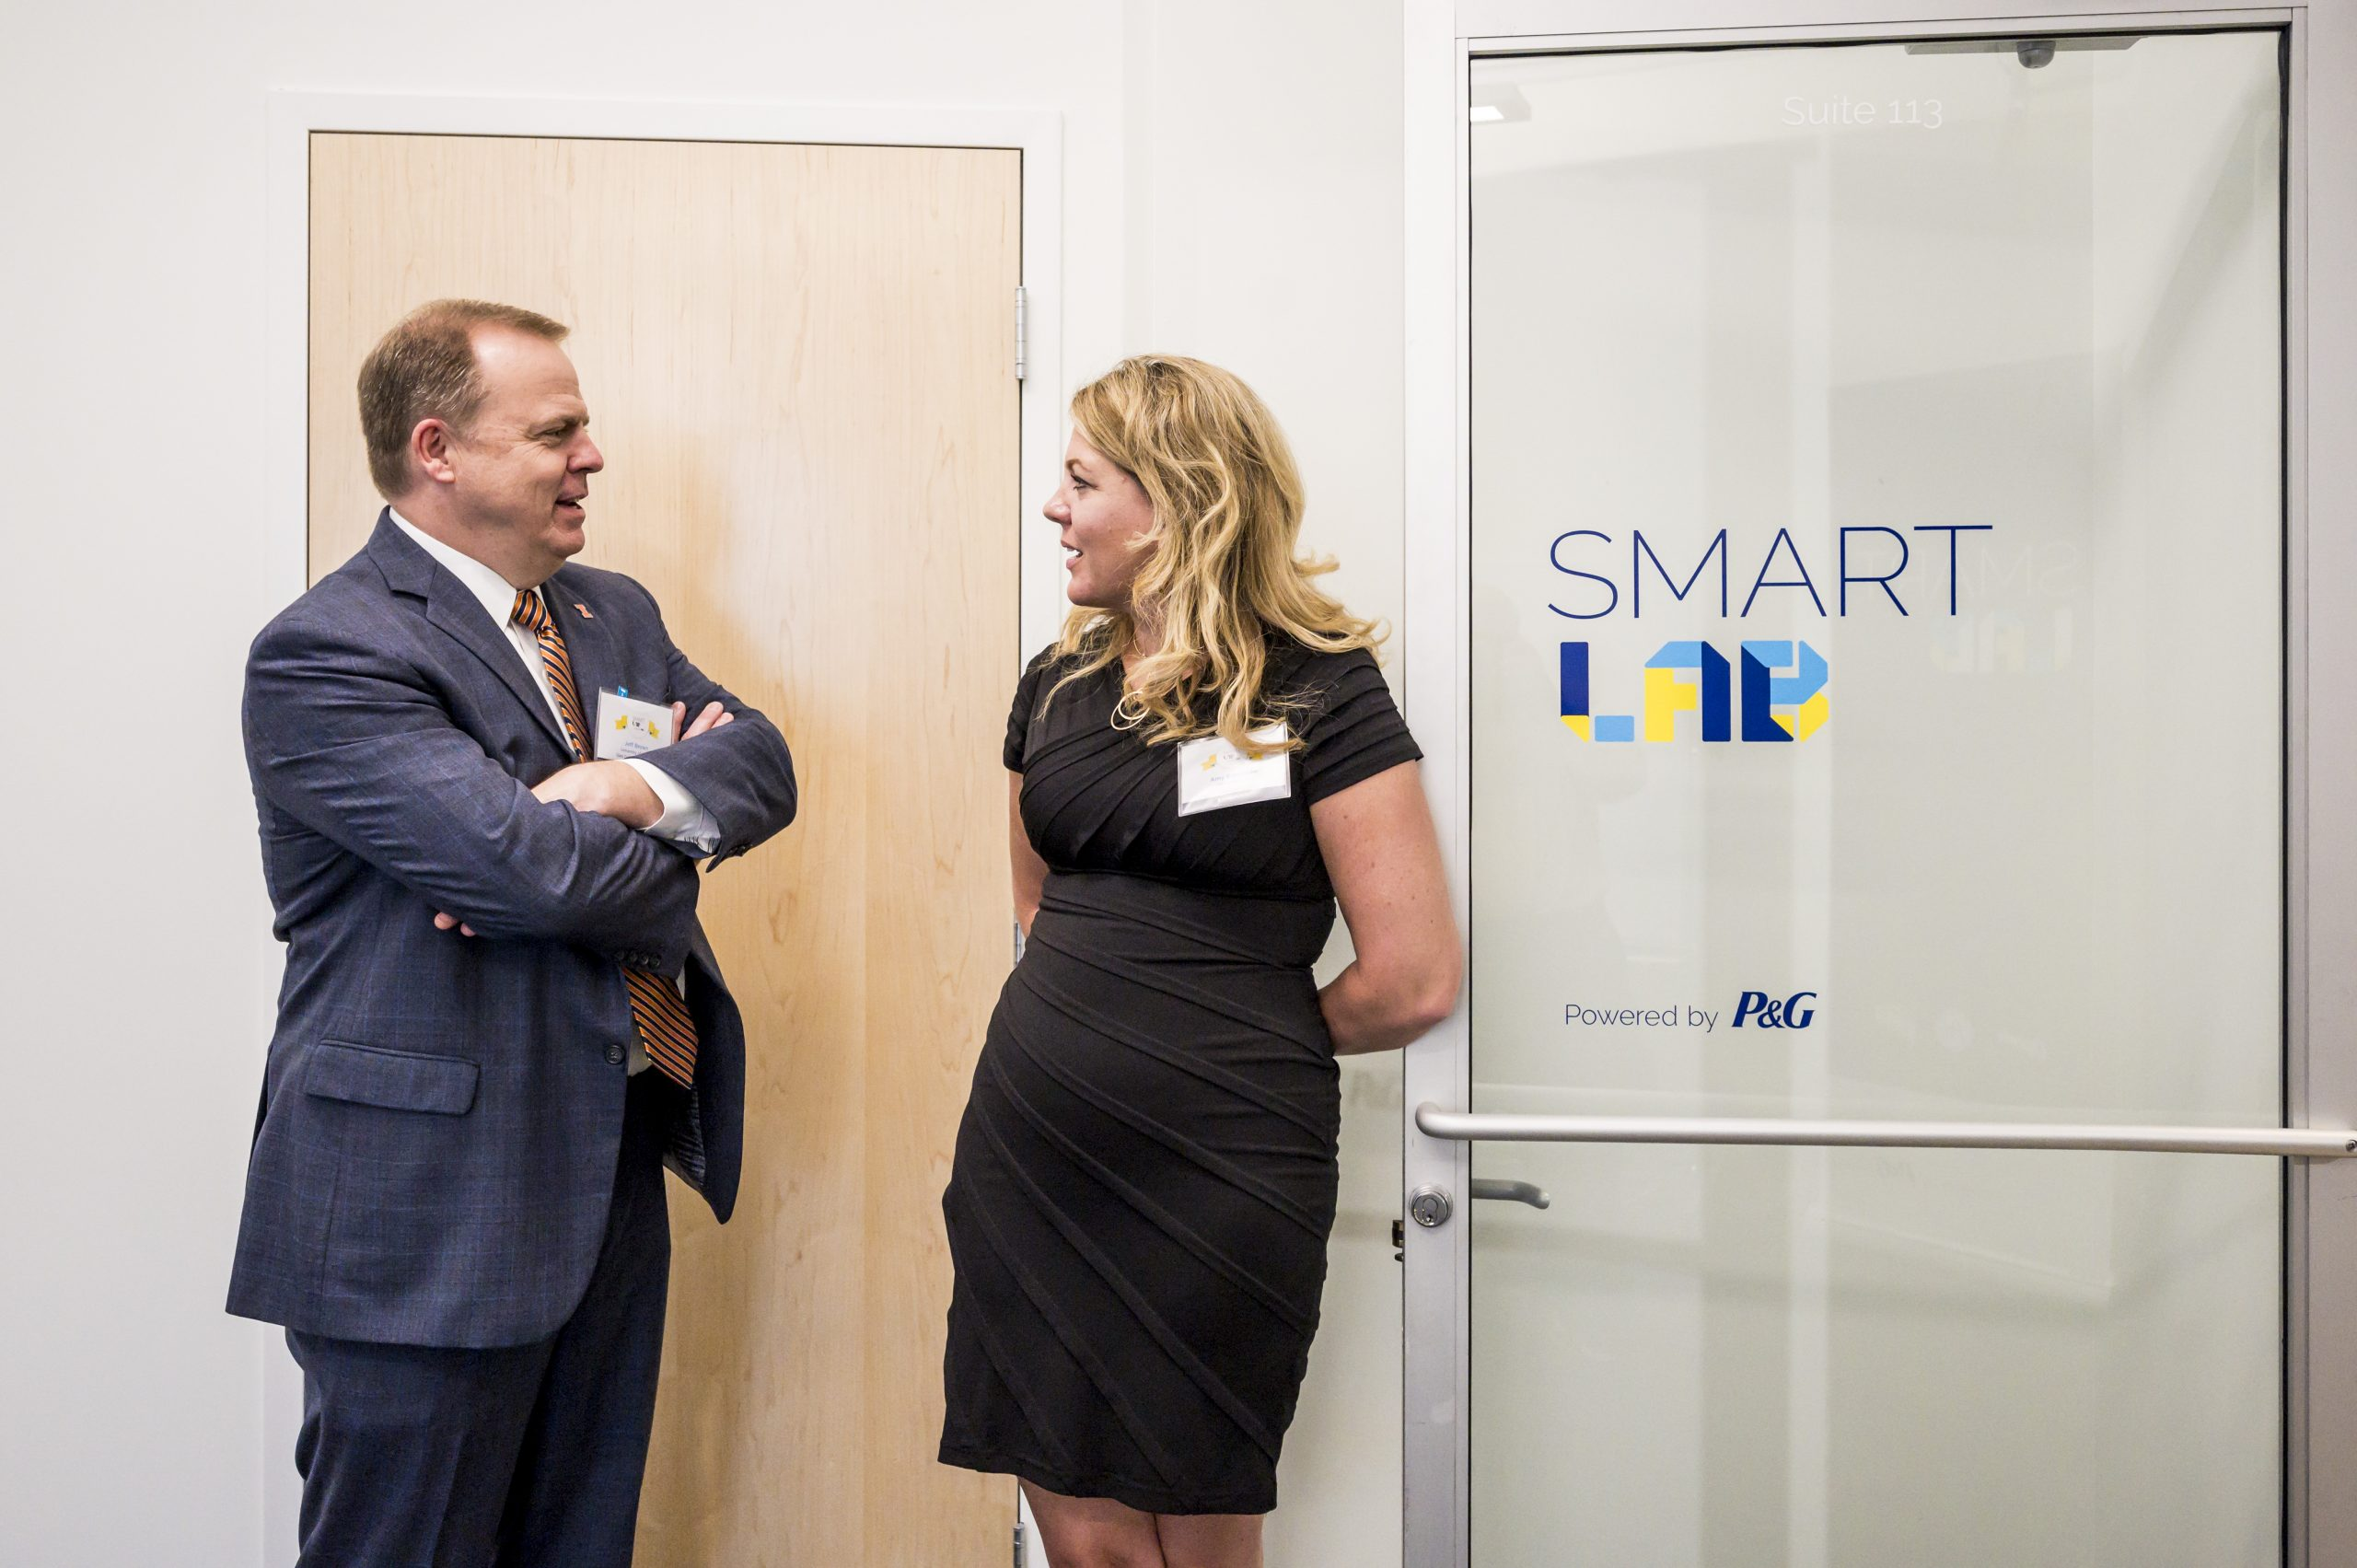 People conversing at the Smart Lab